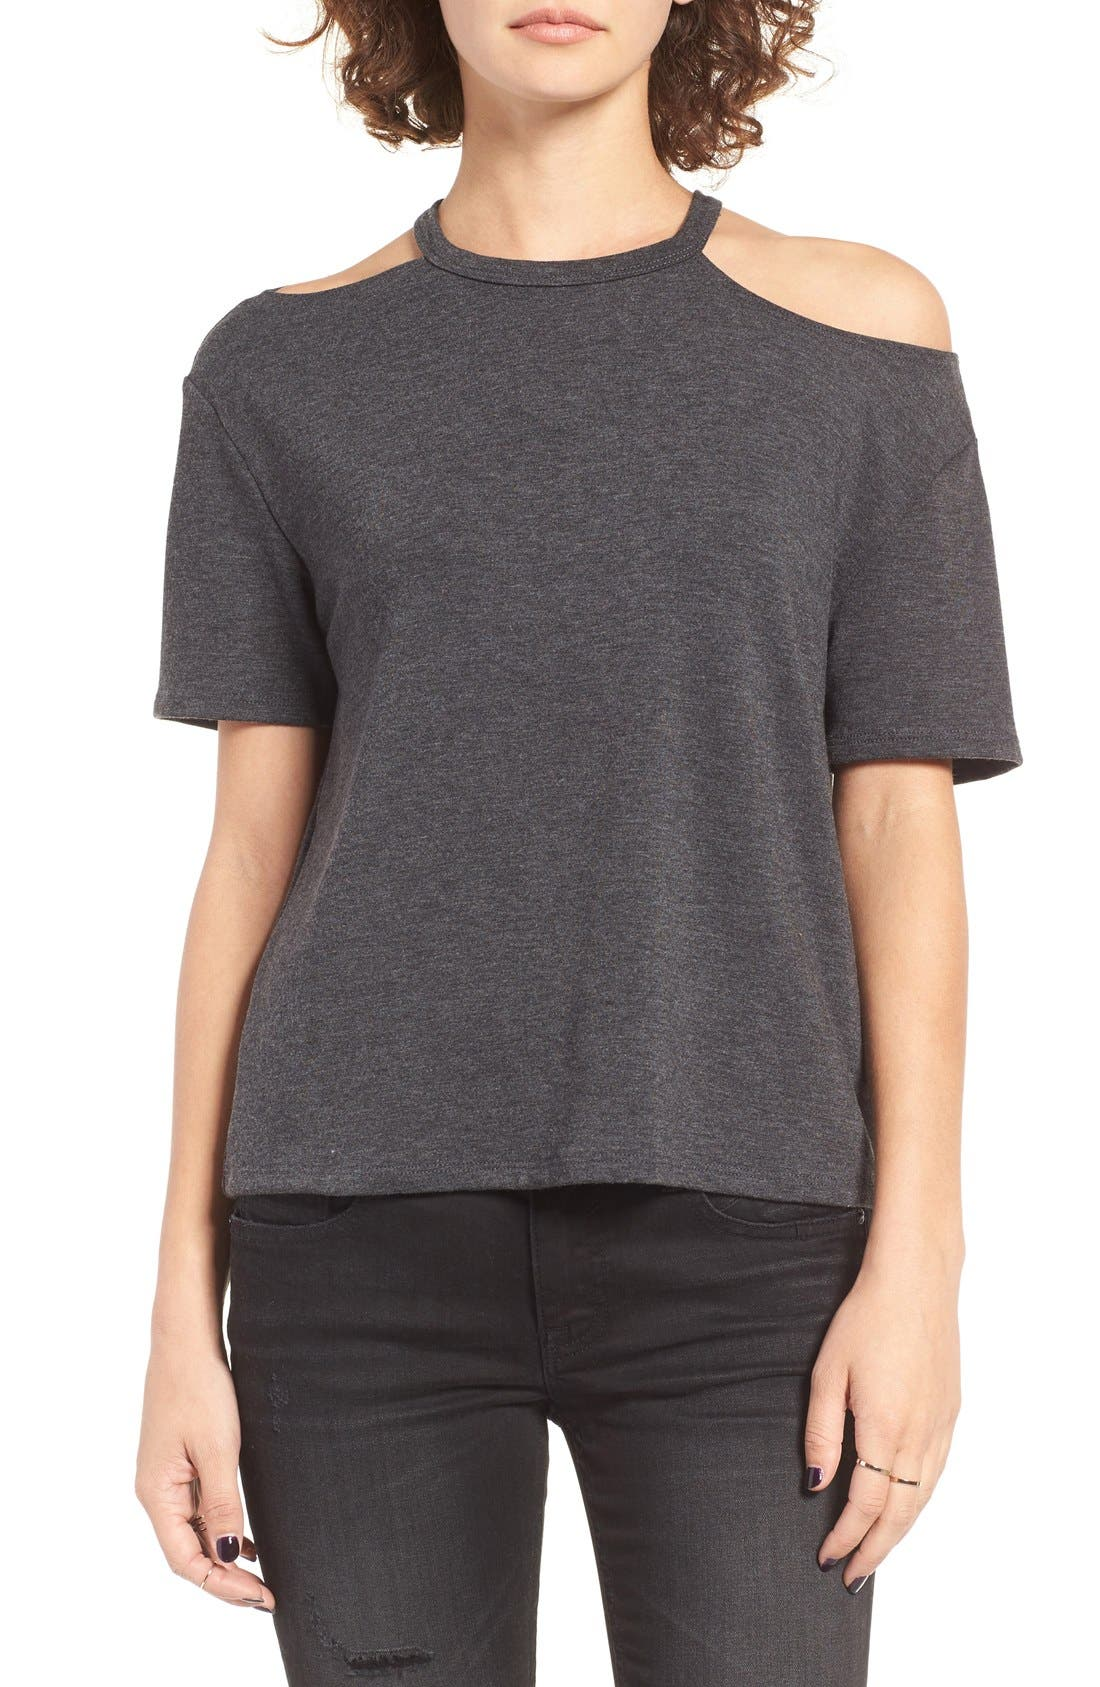 Main Image - Michelle by Comune Fairfield Cold Shoulder Tee